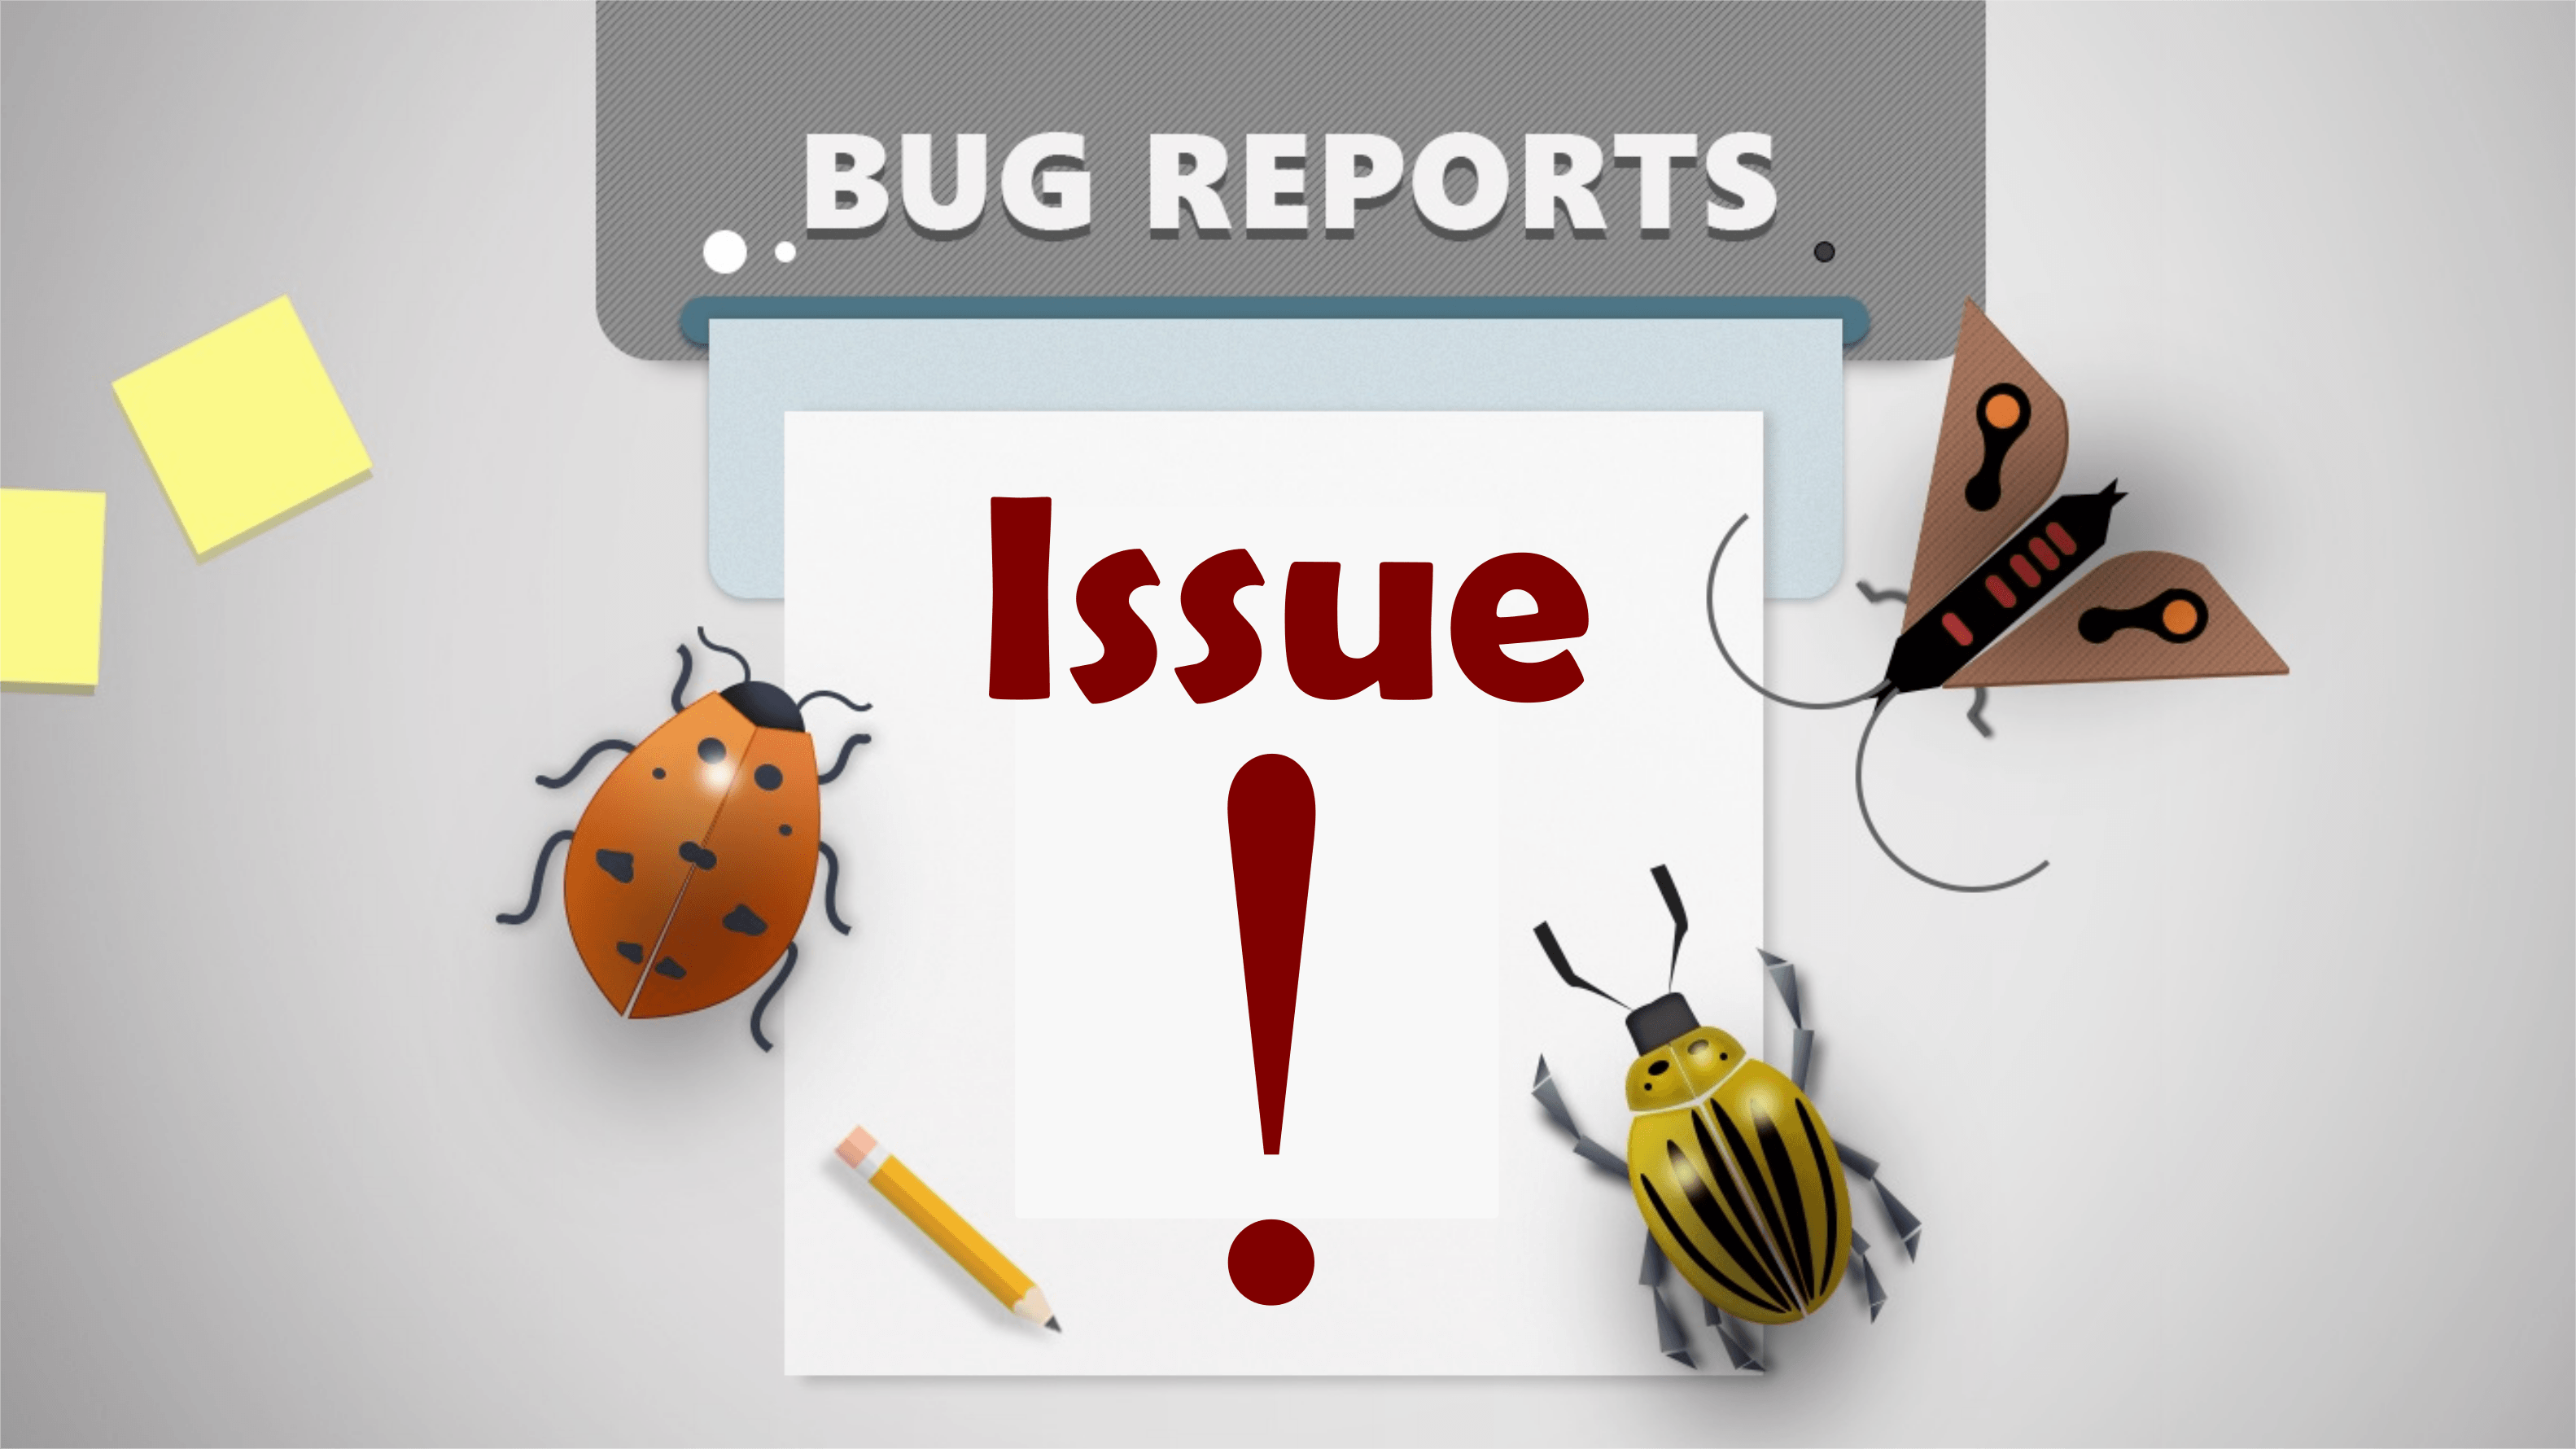 How to write good bug report: content, tips and tricks